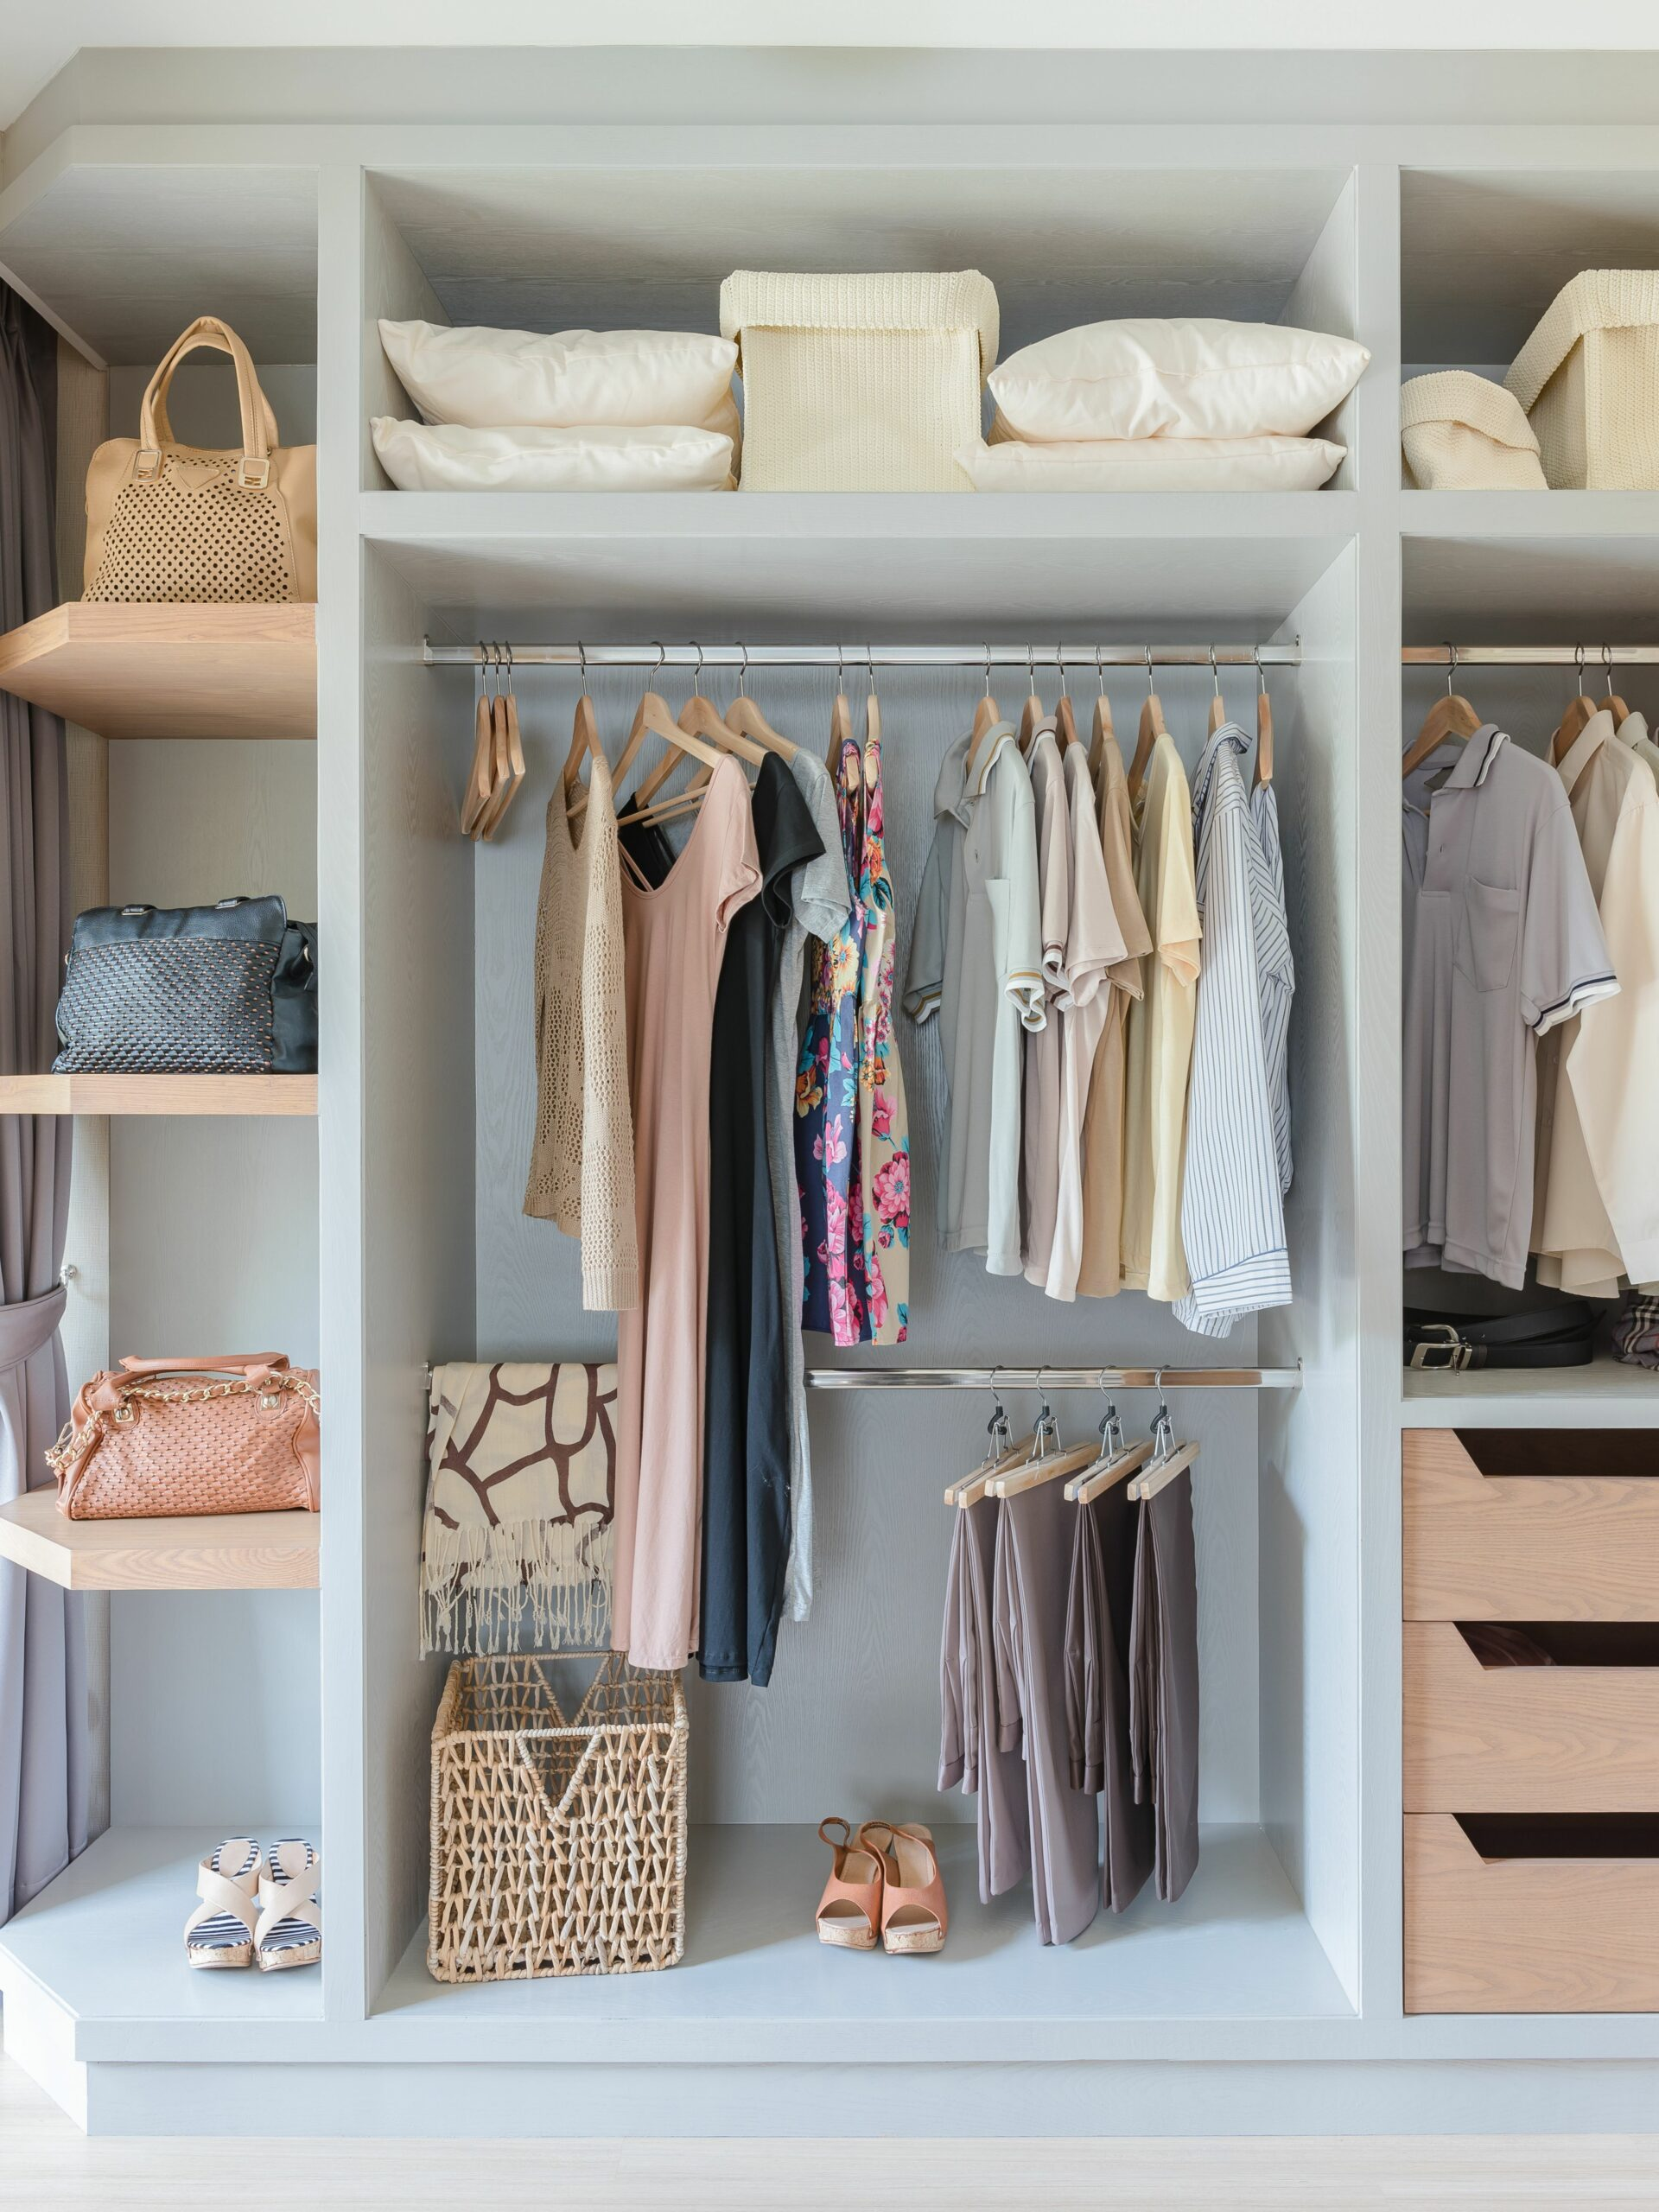 8 Best Closet Organization Ideas to Maximize Space and Style ...